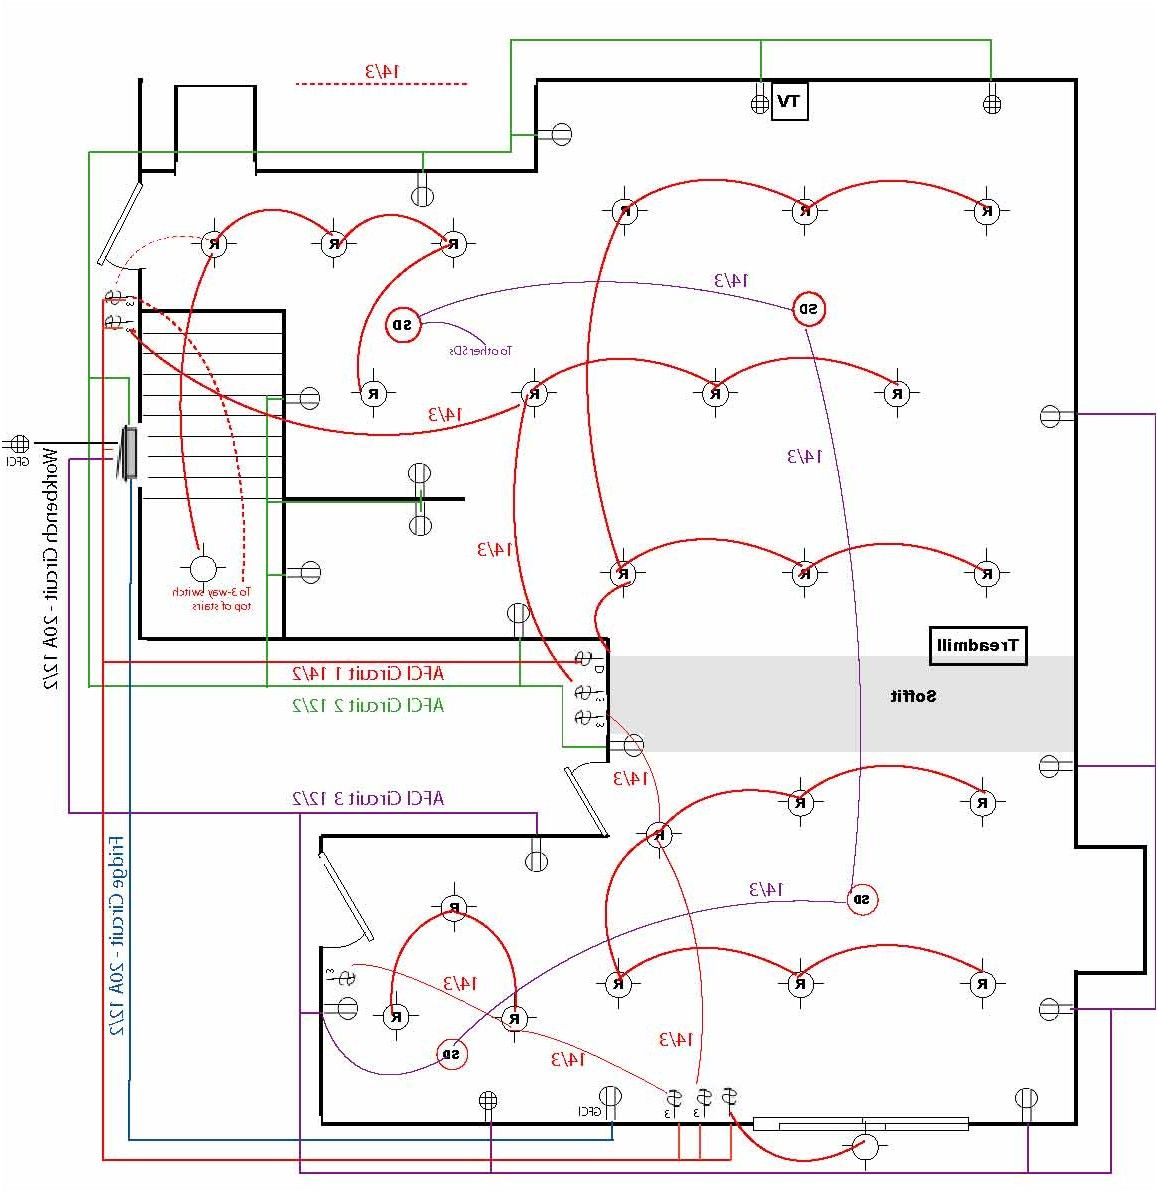 basement wiring diagram review for how to wire a diagram from rh pinterest com Basement Wiring Plan Basement Electrical Wiring